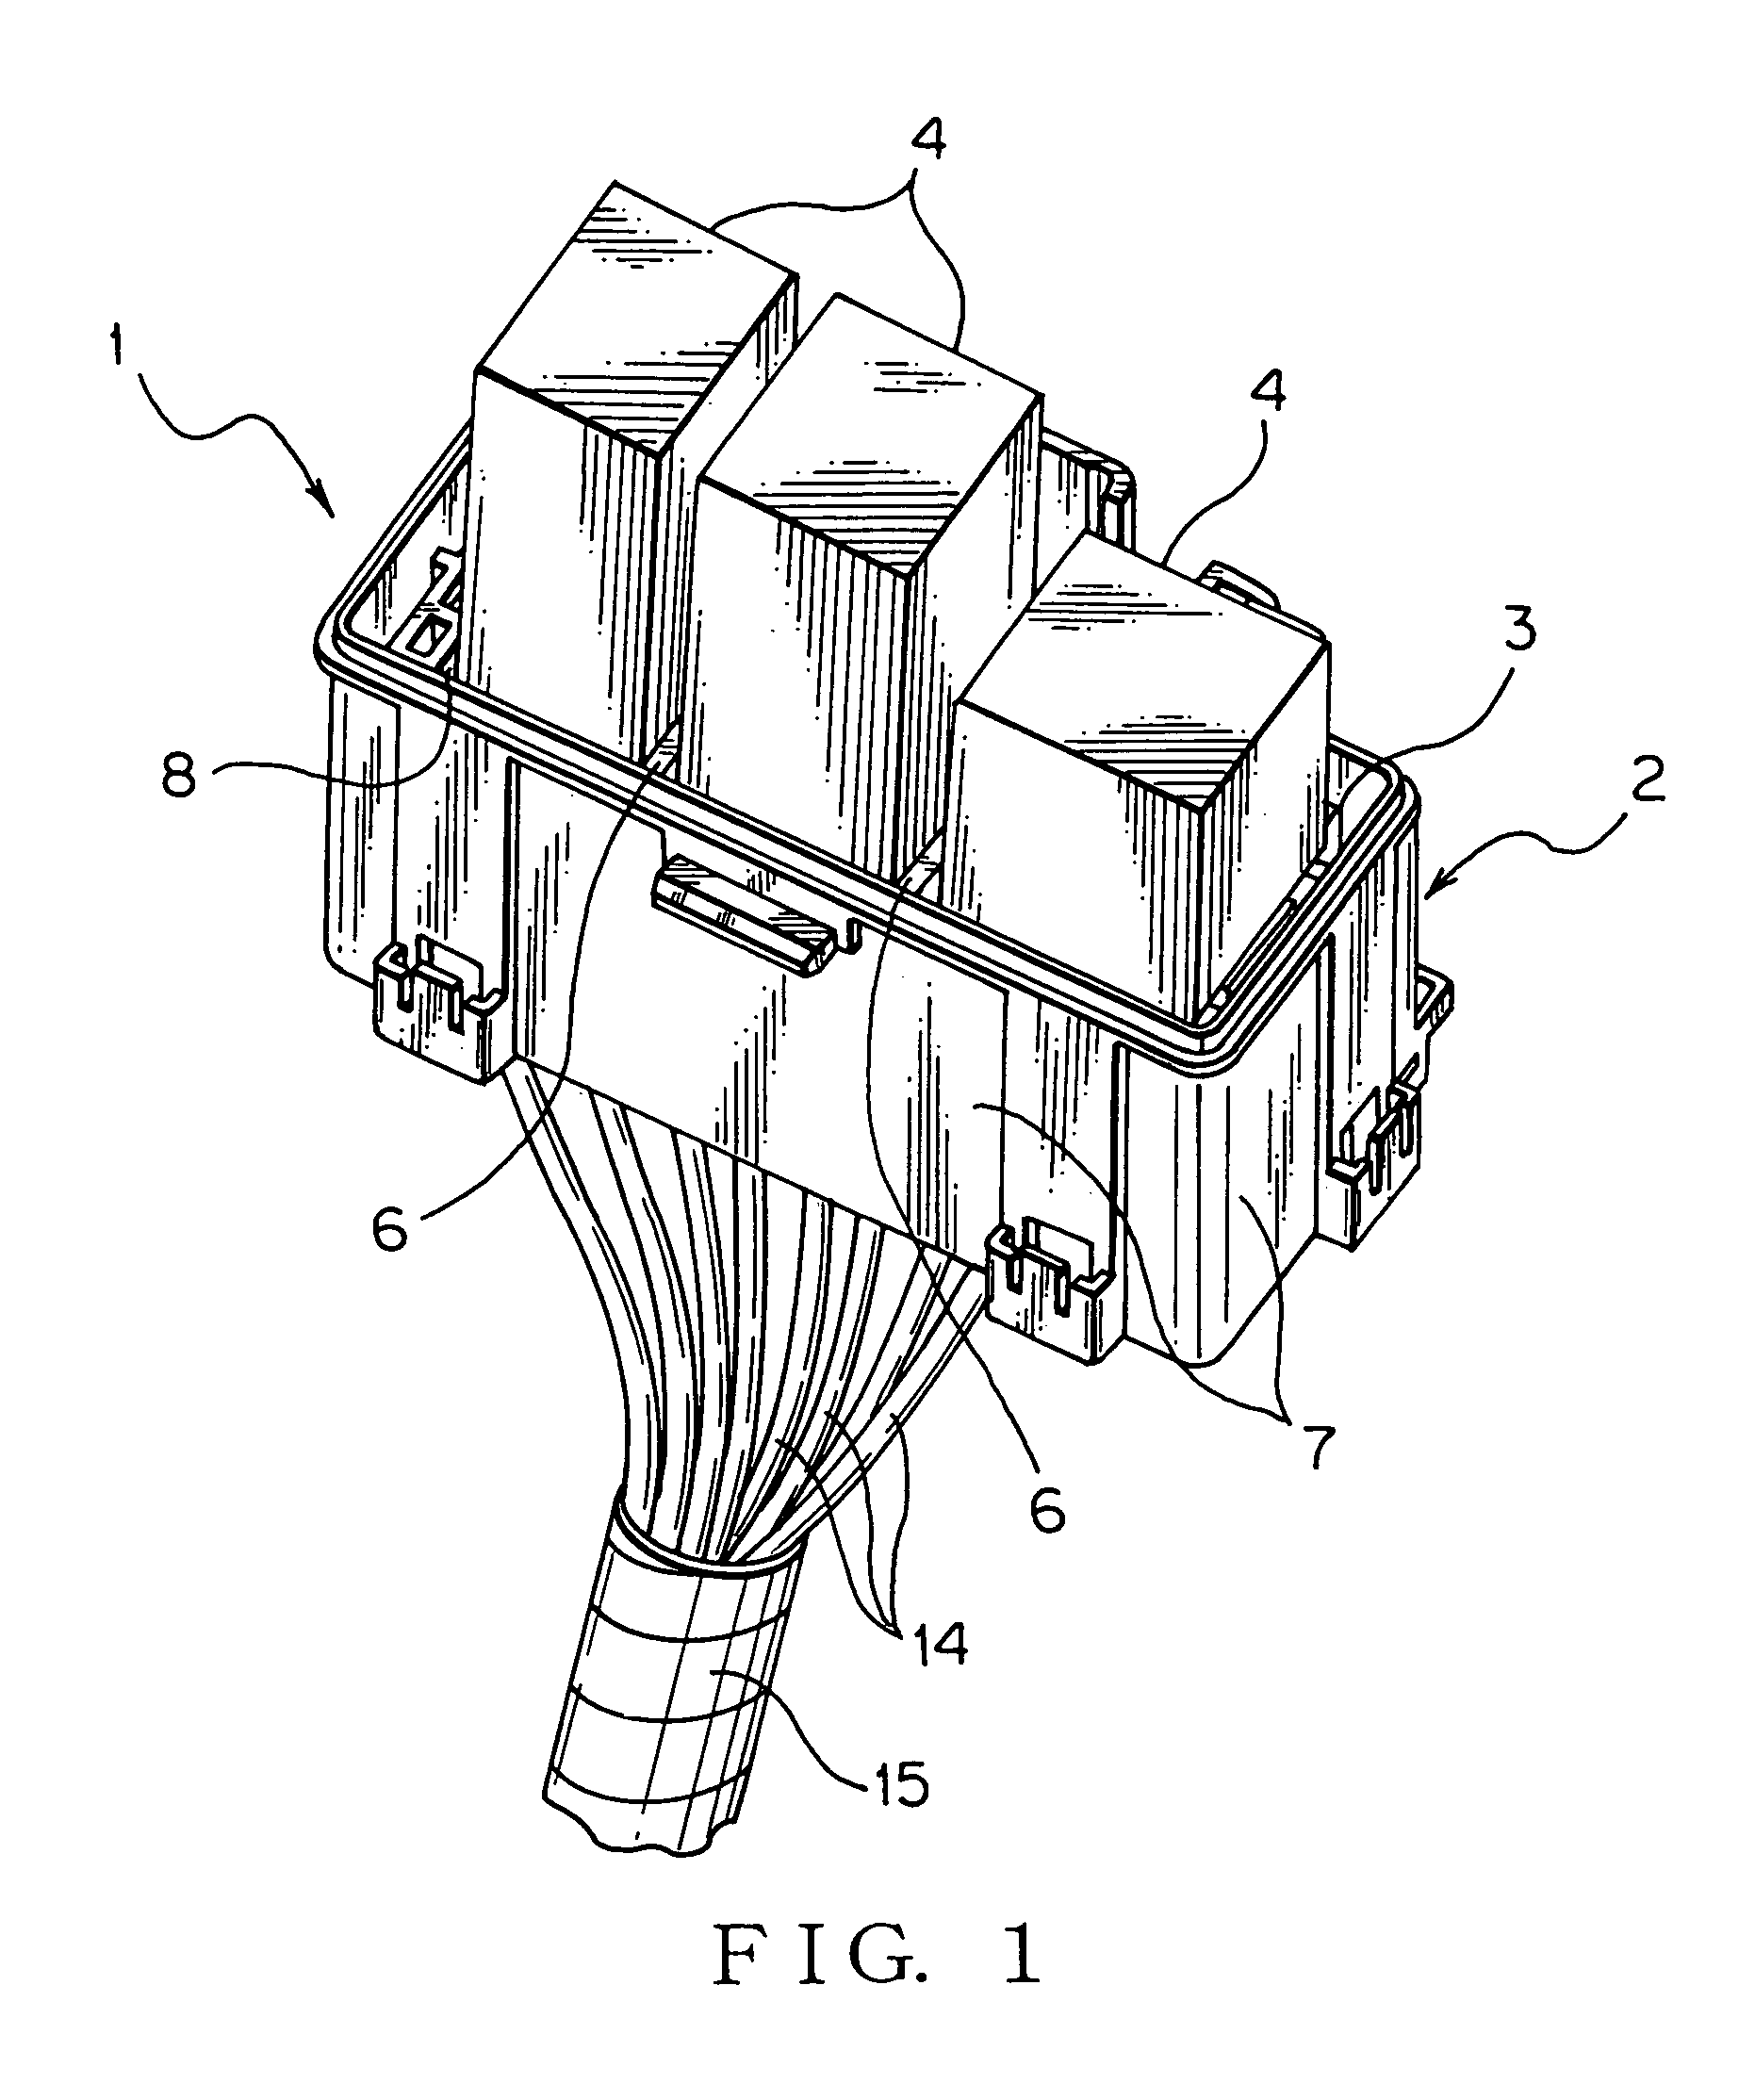 patent us7891987 - electric junction box